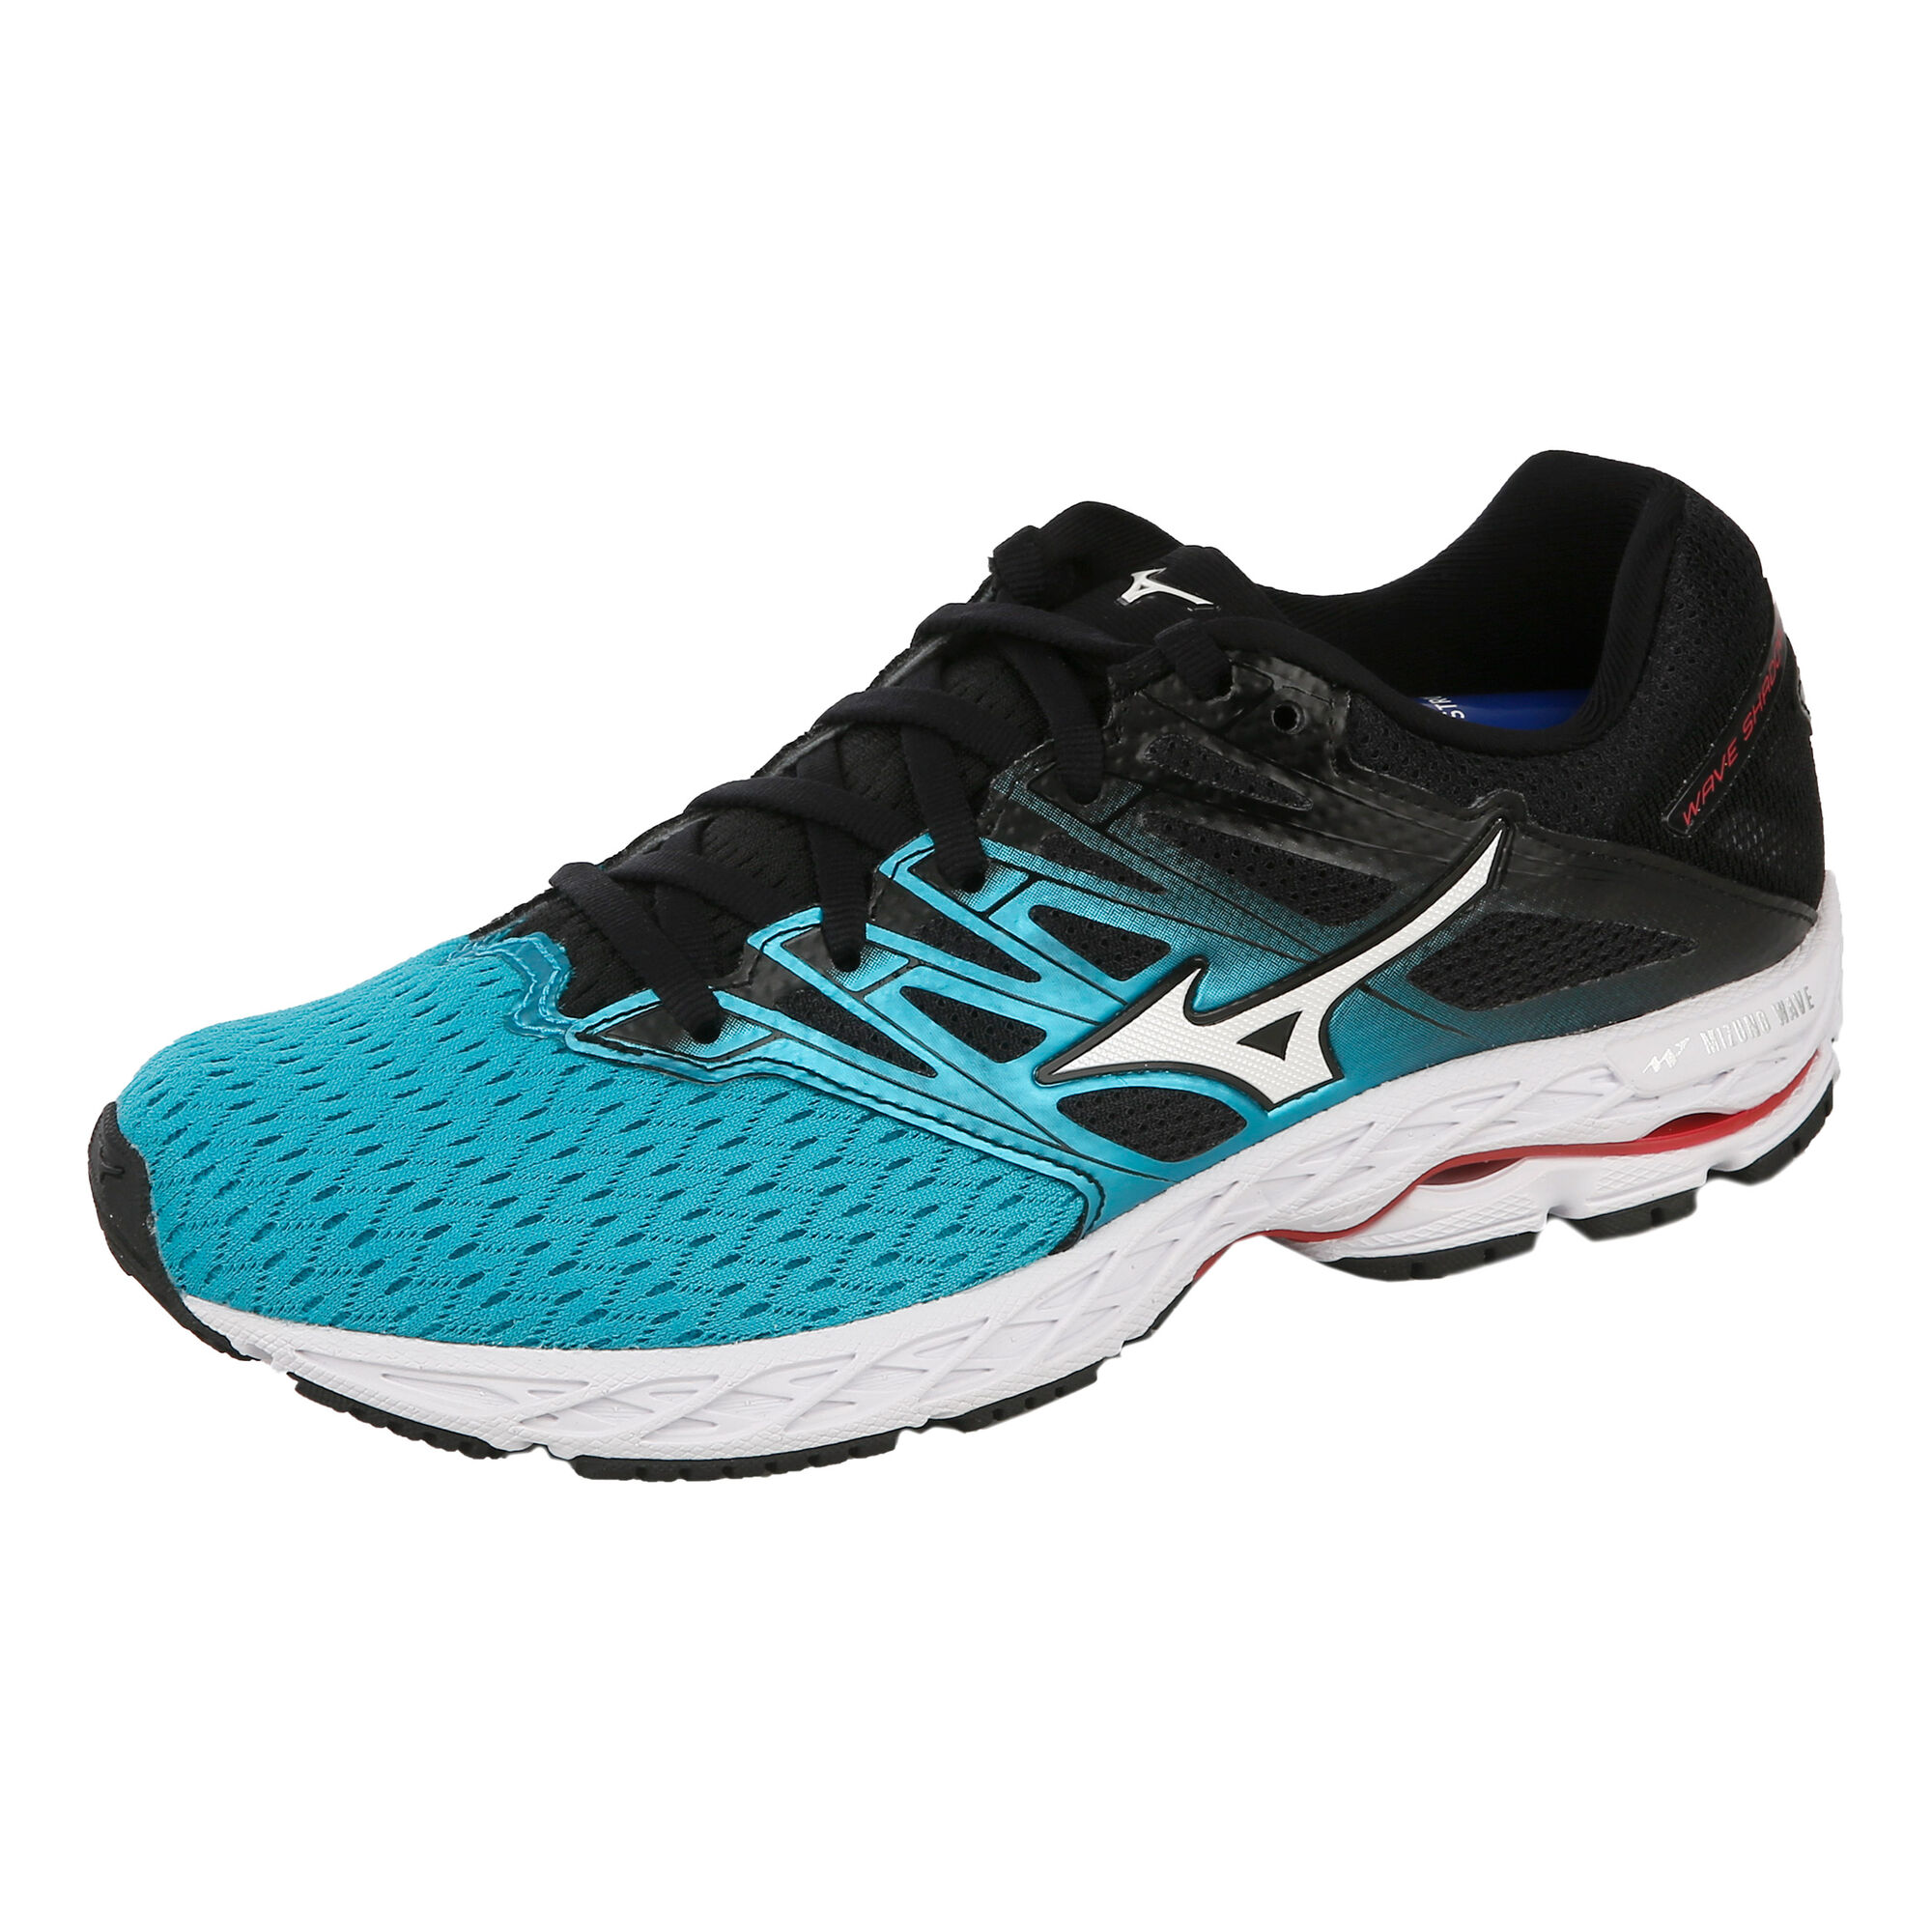 brand new 7dada 98223 Mizuno Wave Shadow 2 Competition Running Shoe Women - Mint, Black